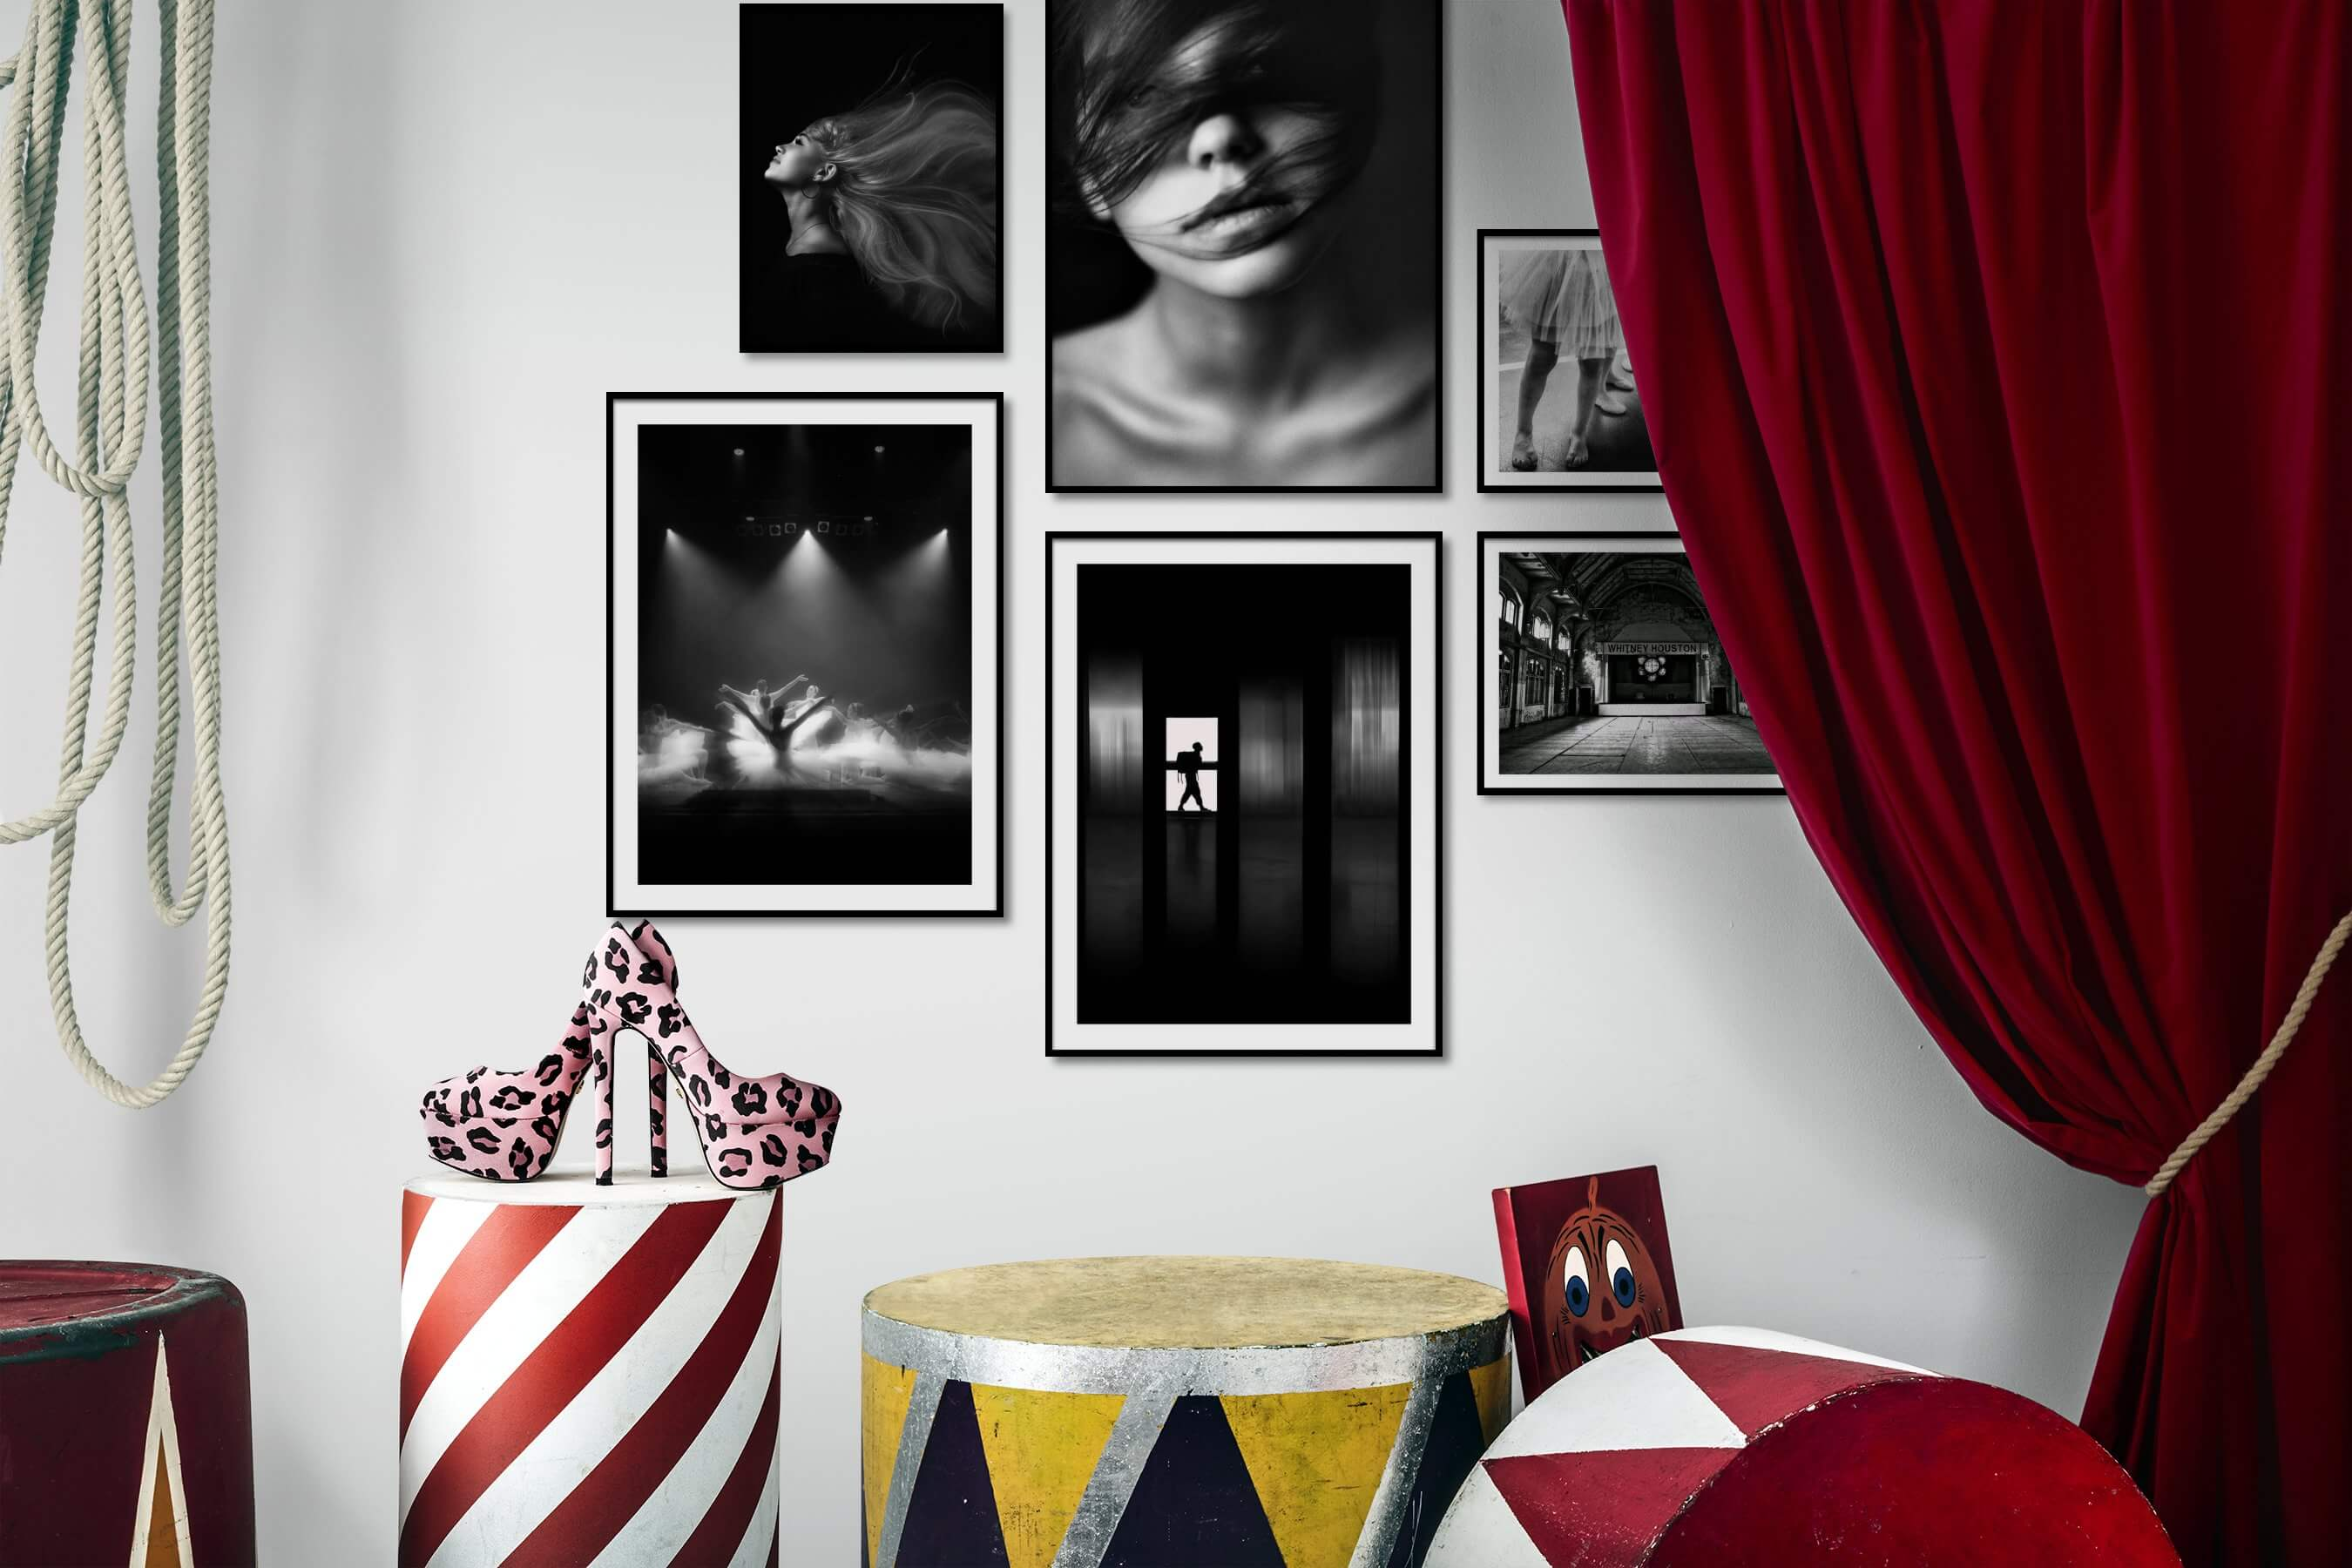 Gallery wall idea with six framed pictures arranged on a wall depicting Fashion & Beauty, Black & White, Dark Tones, For the Minimalist, For the Moderate, City Life, and Americana